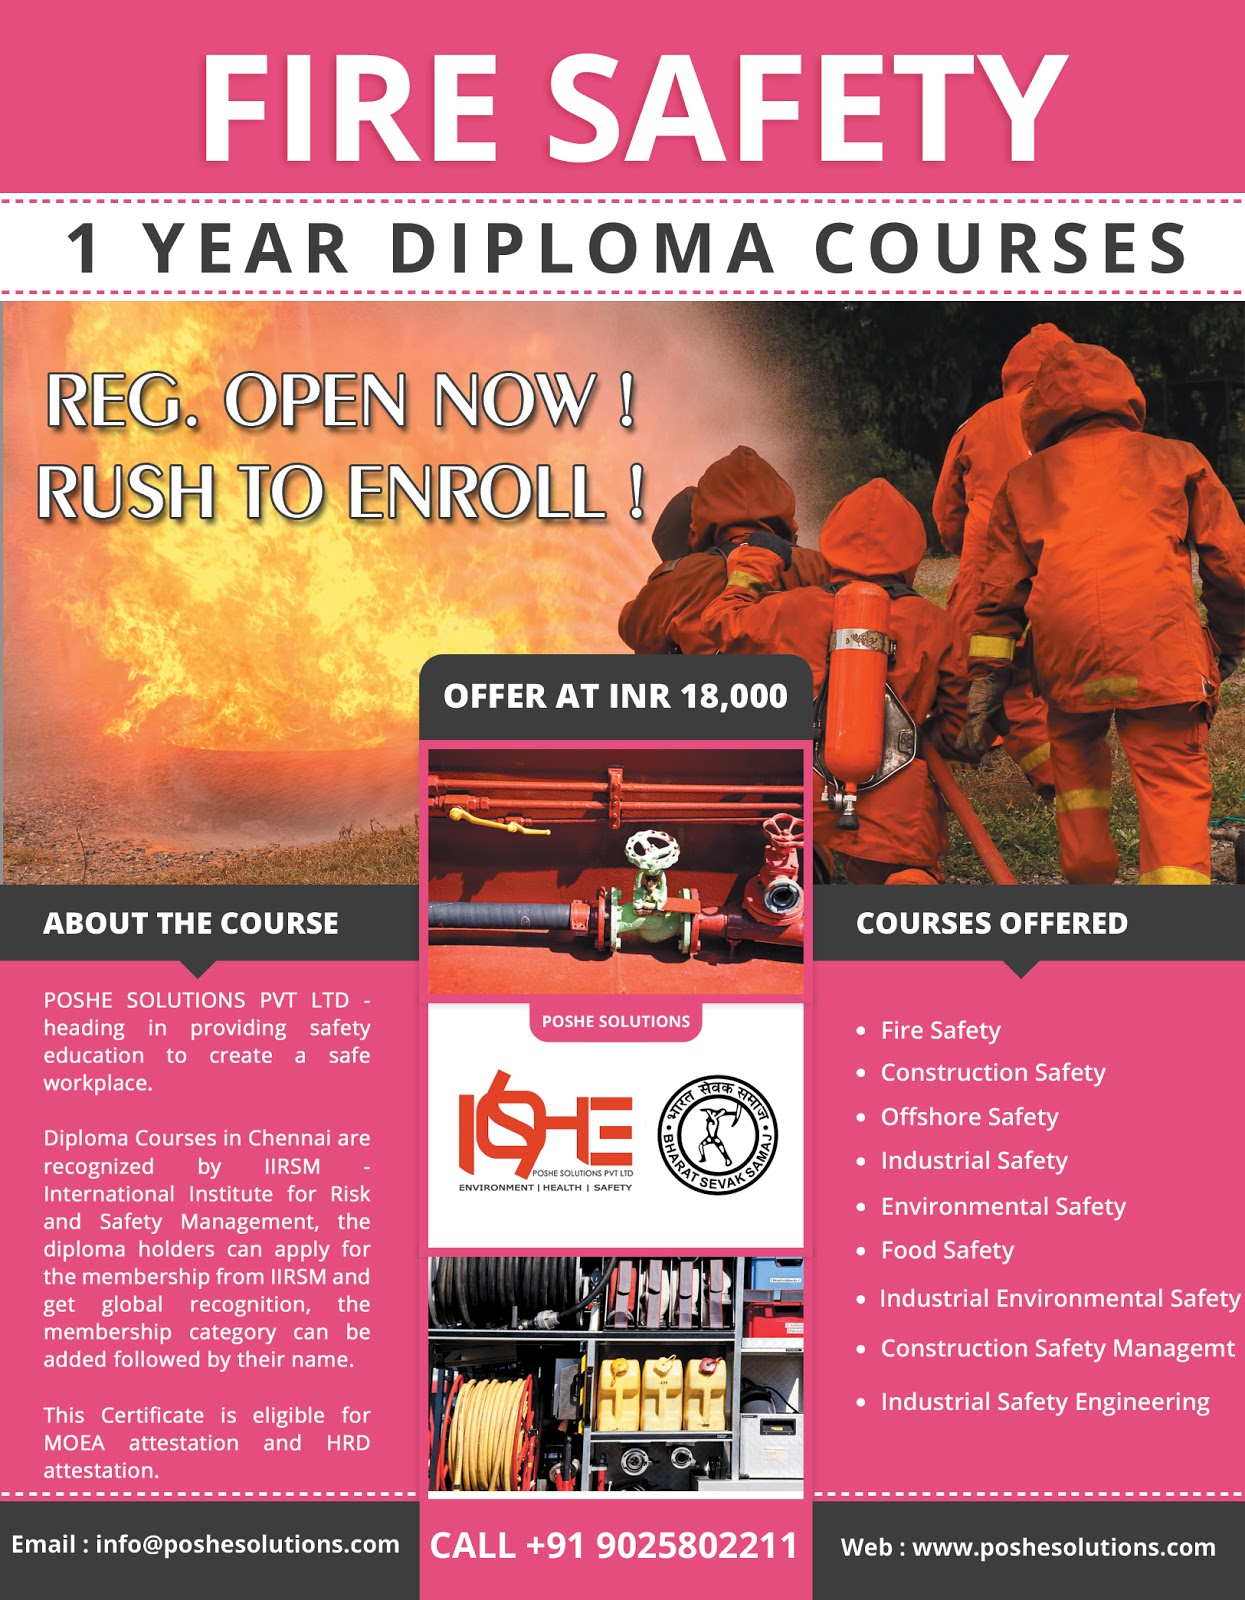 Globally Recognized International Safety Training Course Provider POSHE Offer Courses